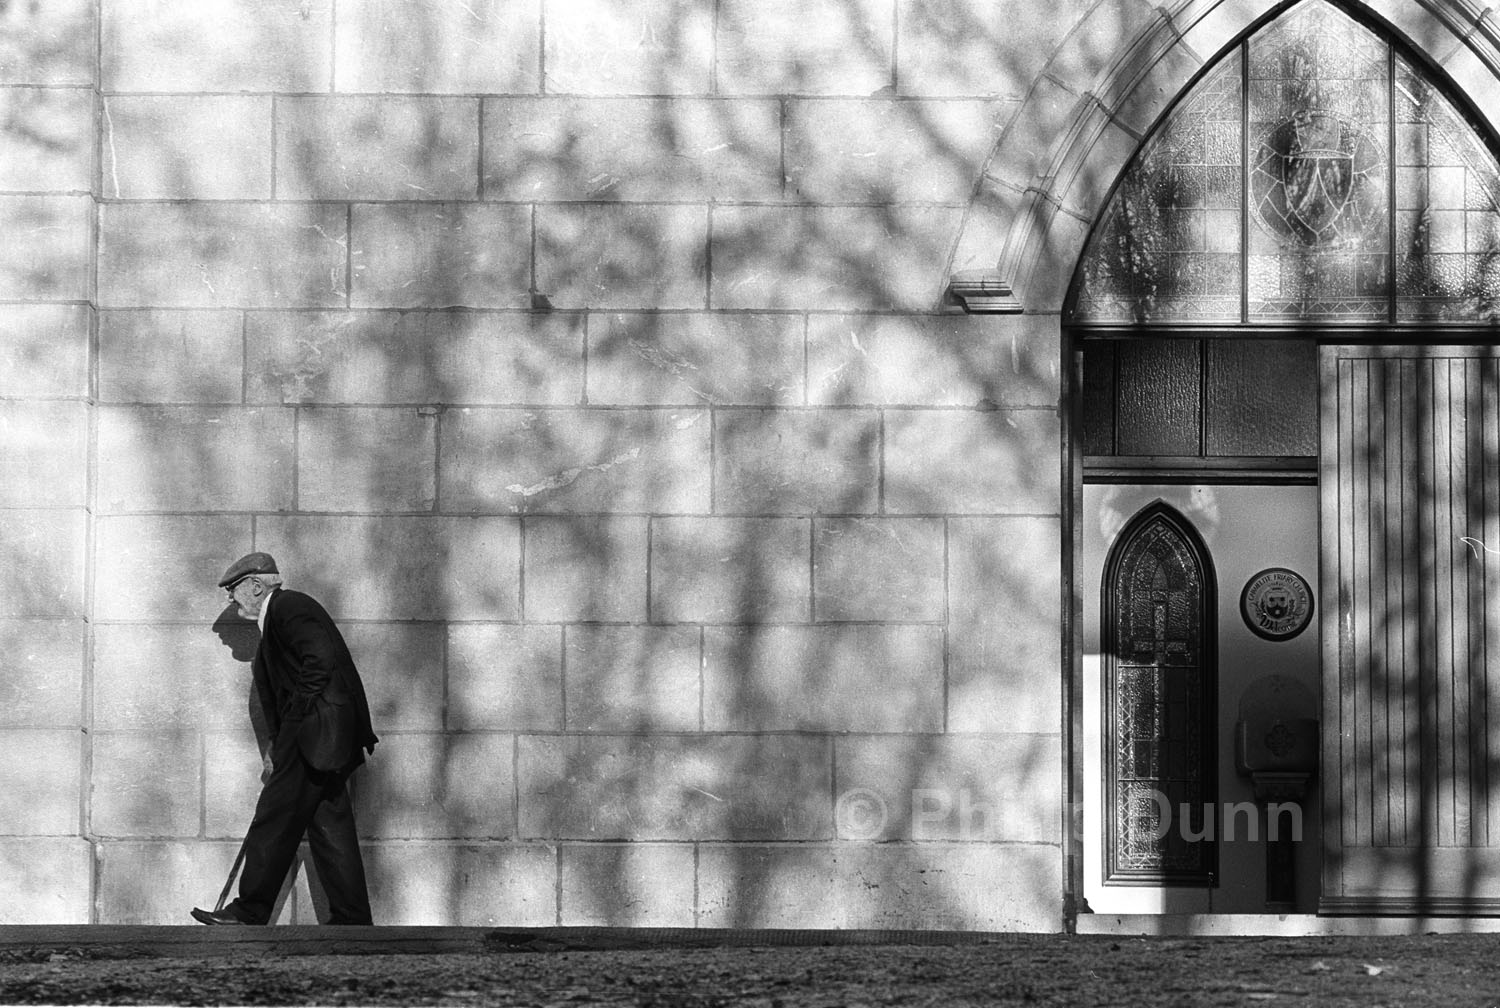 Old man leaves church along wall dappled with tree shadows, Ireland